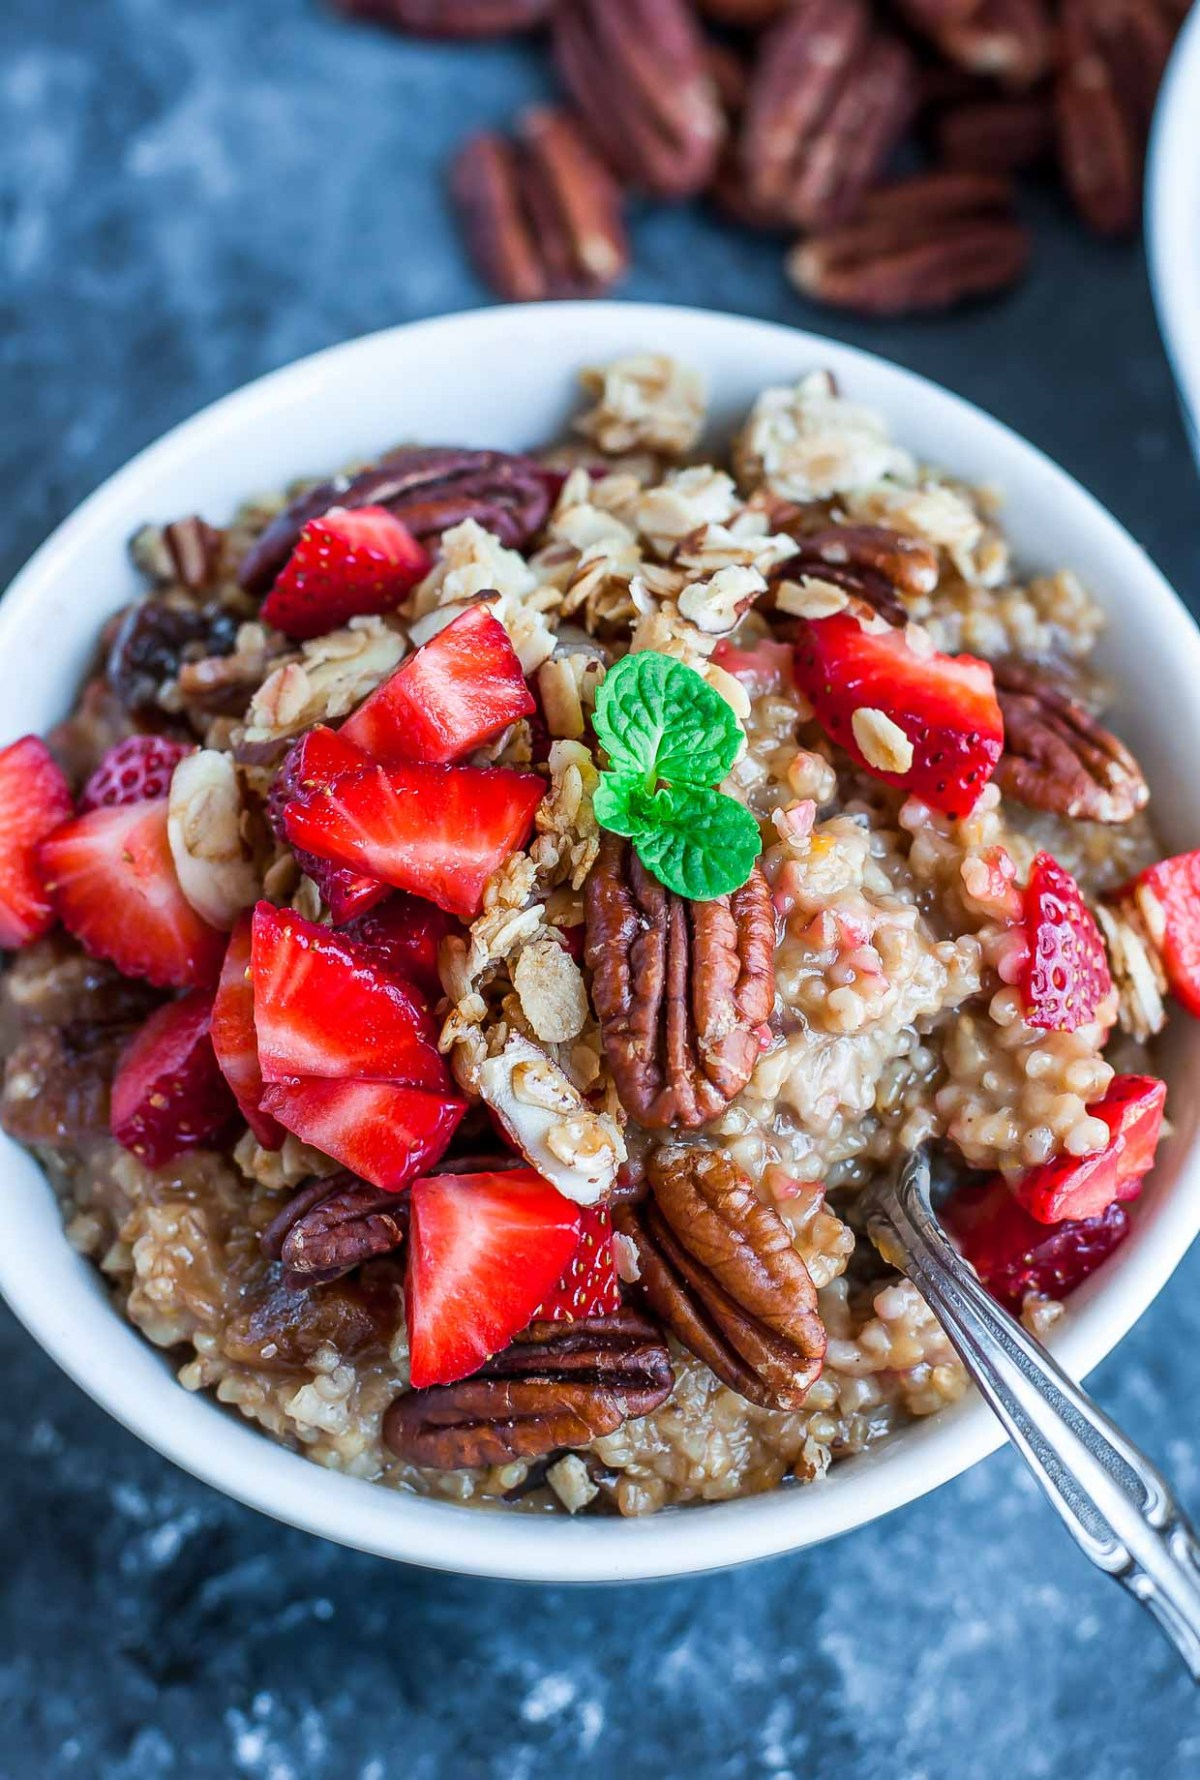 INSTANT POT STRAWBERRY TRAIL MIX OATMEAL